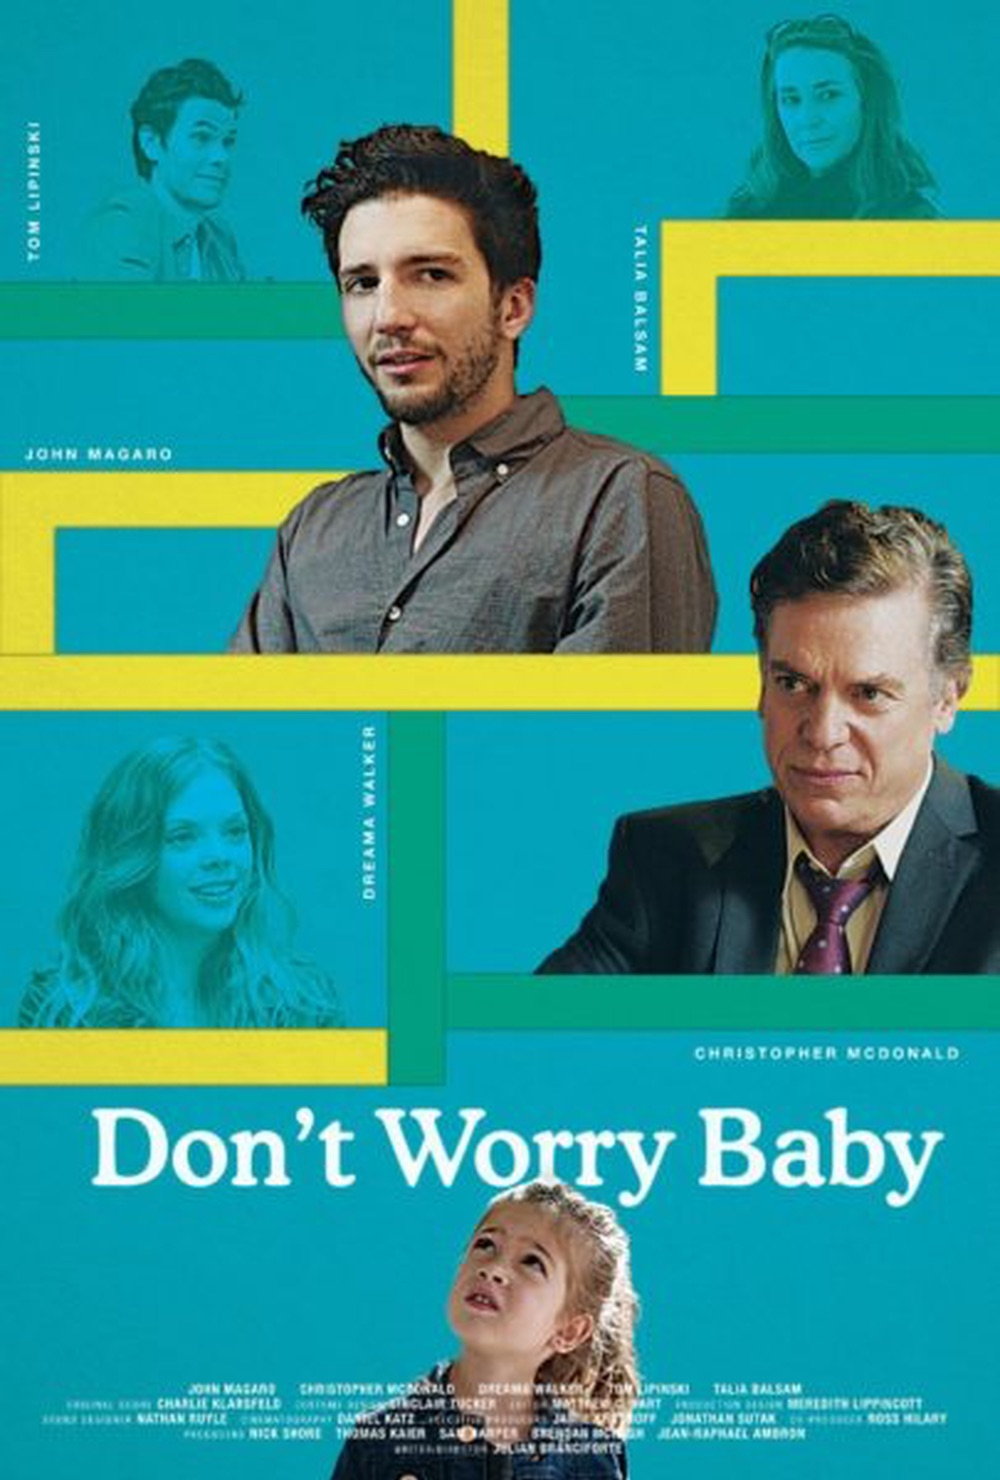 Dont-Worry-Baby-Movie-Posterjpg-405x600.jpg